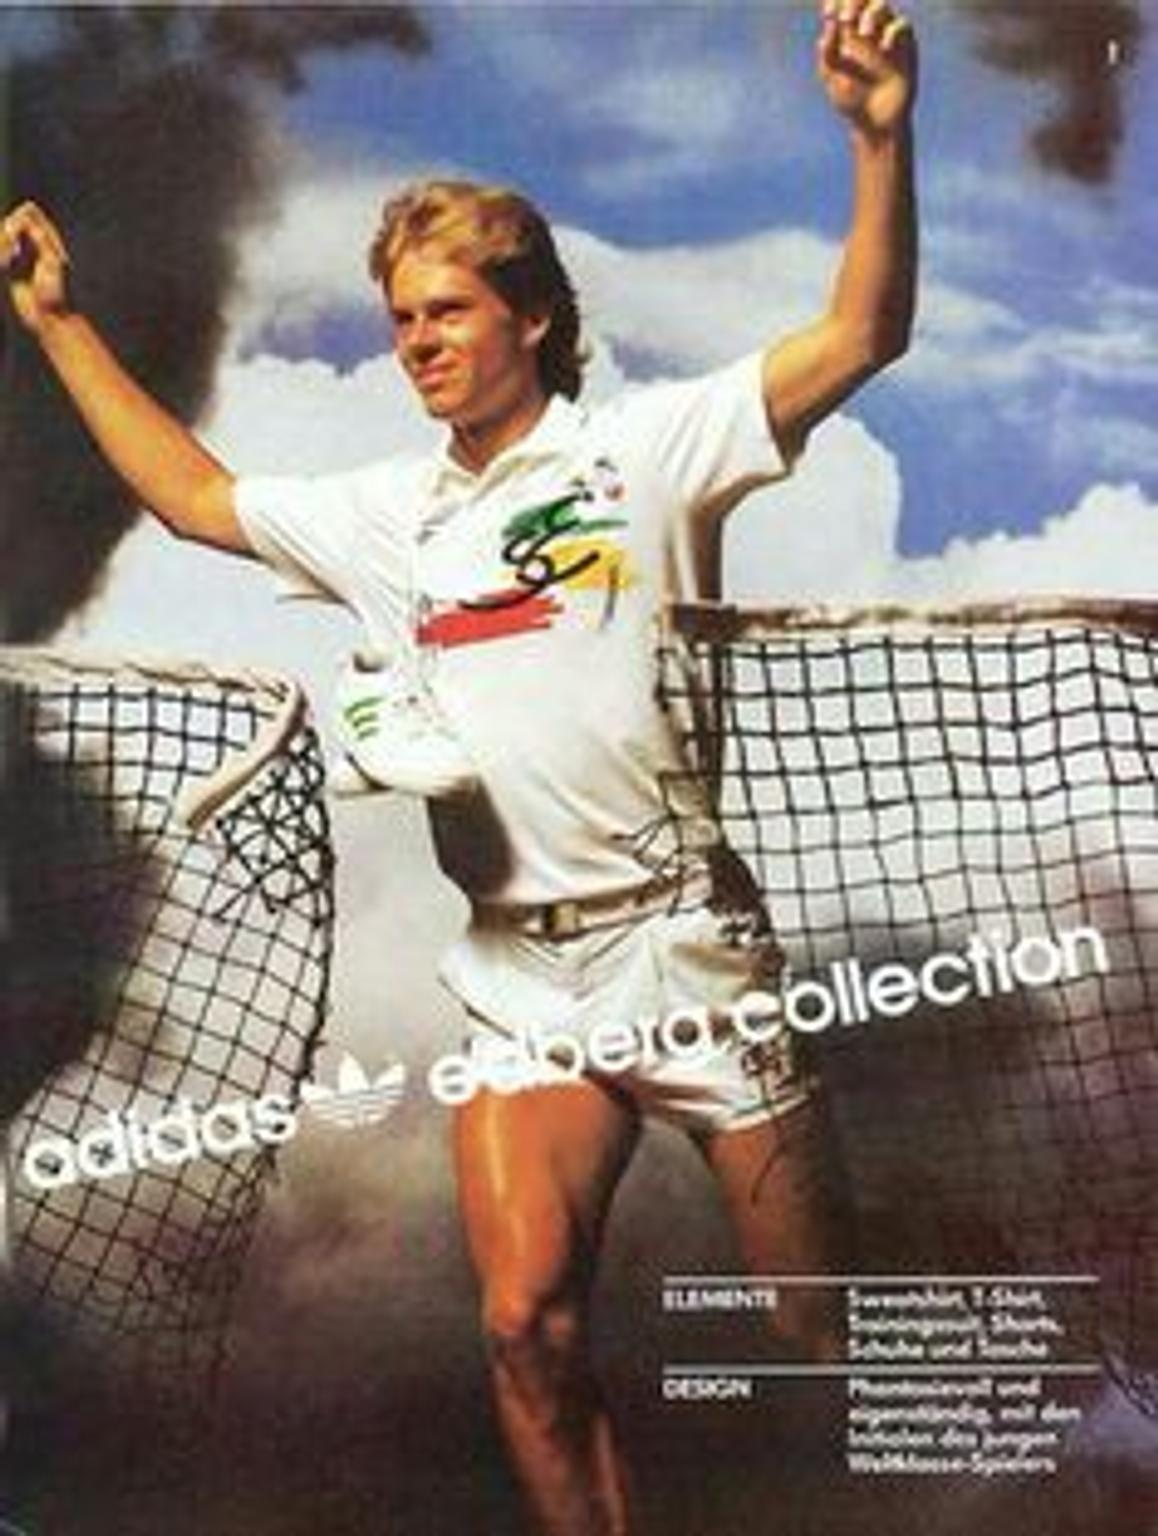 Polo Adidas Edberg collection